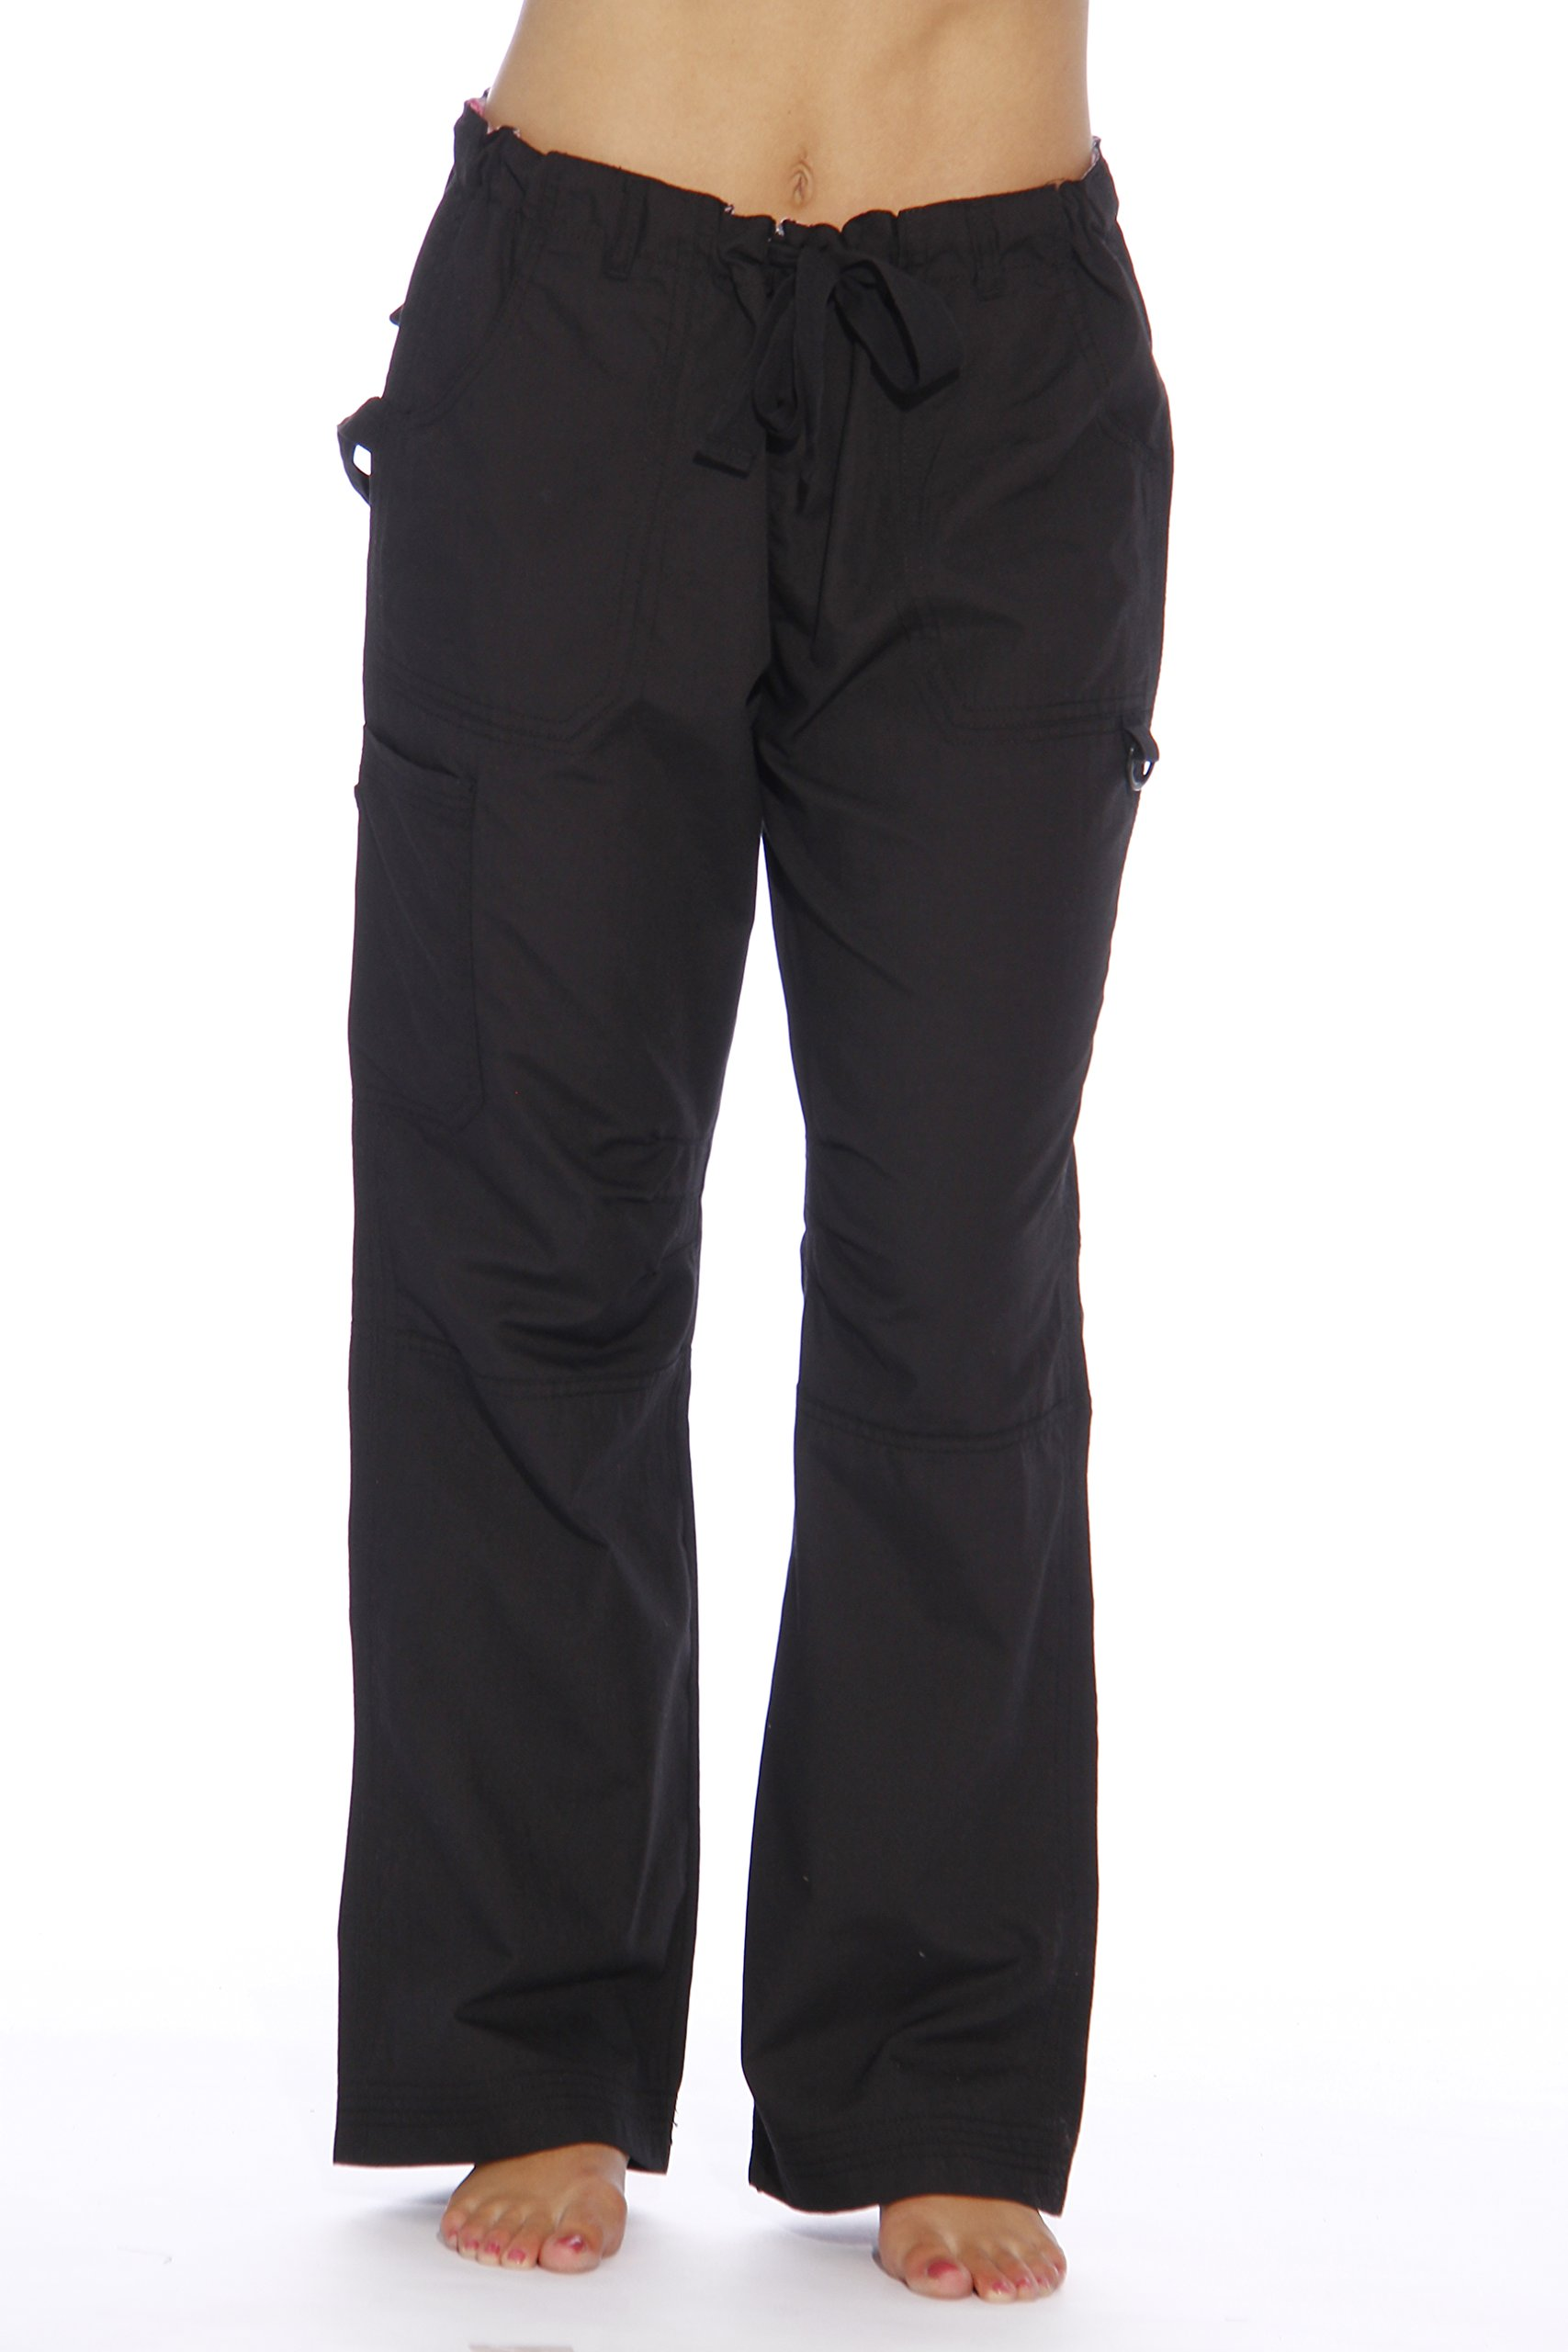 24000PBLK-L Just Love Women's Utility Scrub Pants / Scrubs, Black Utility, Large